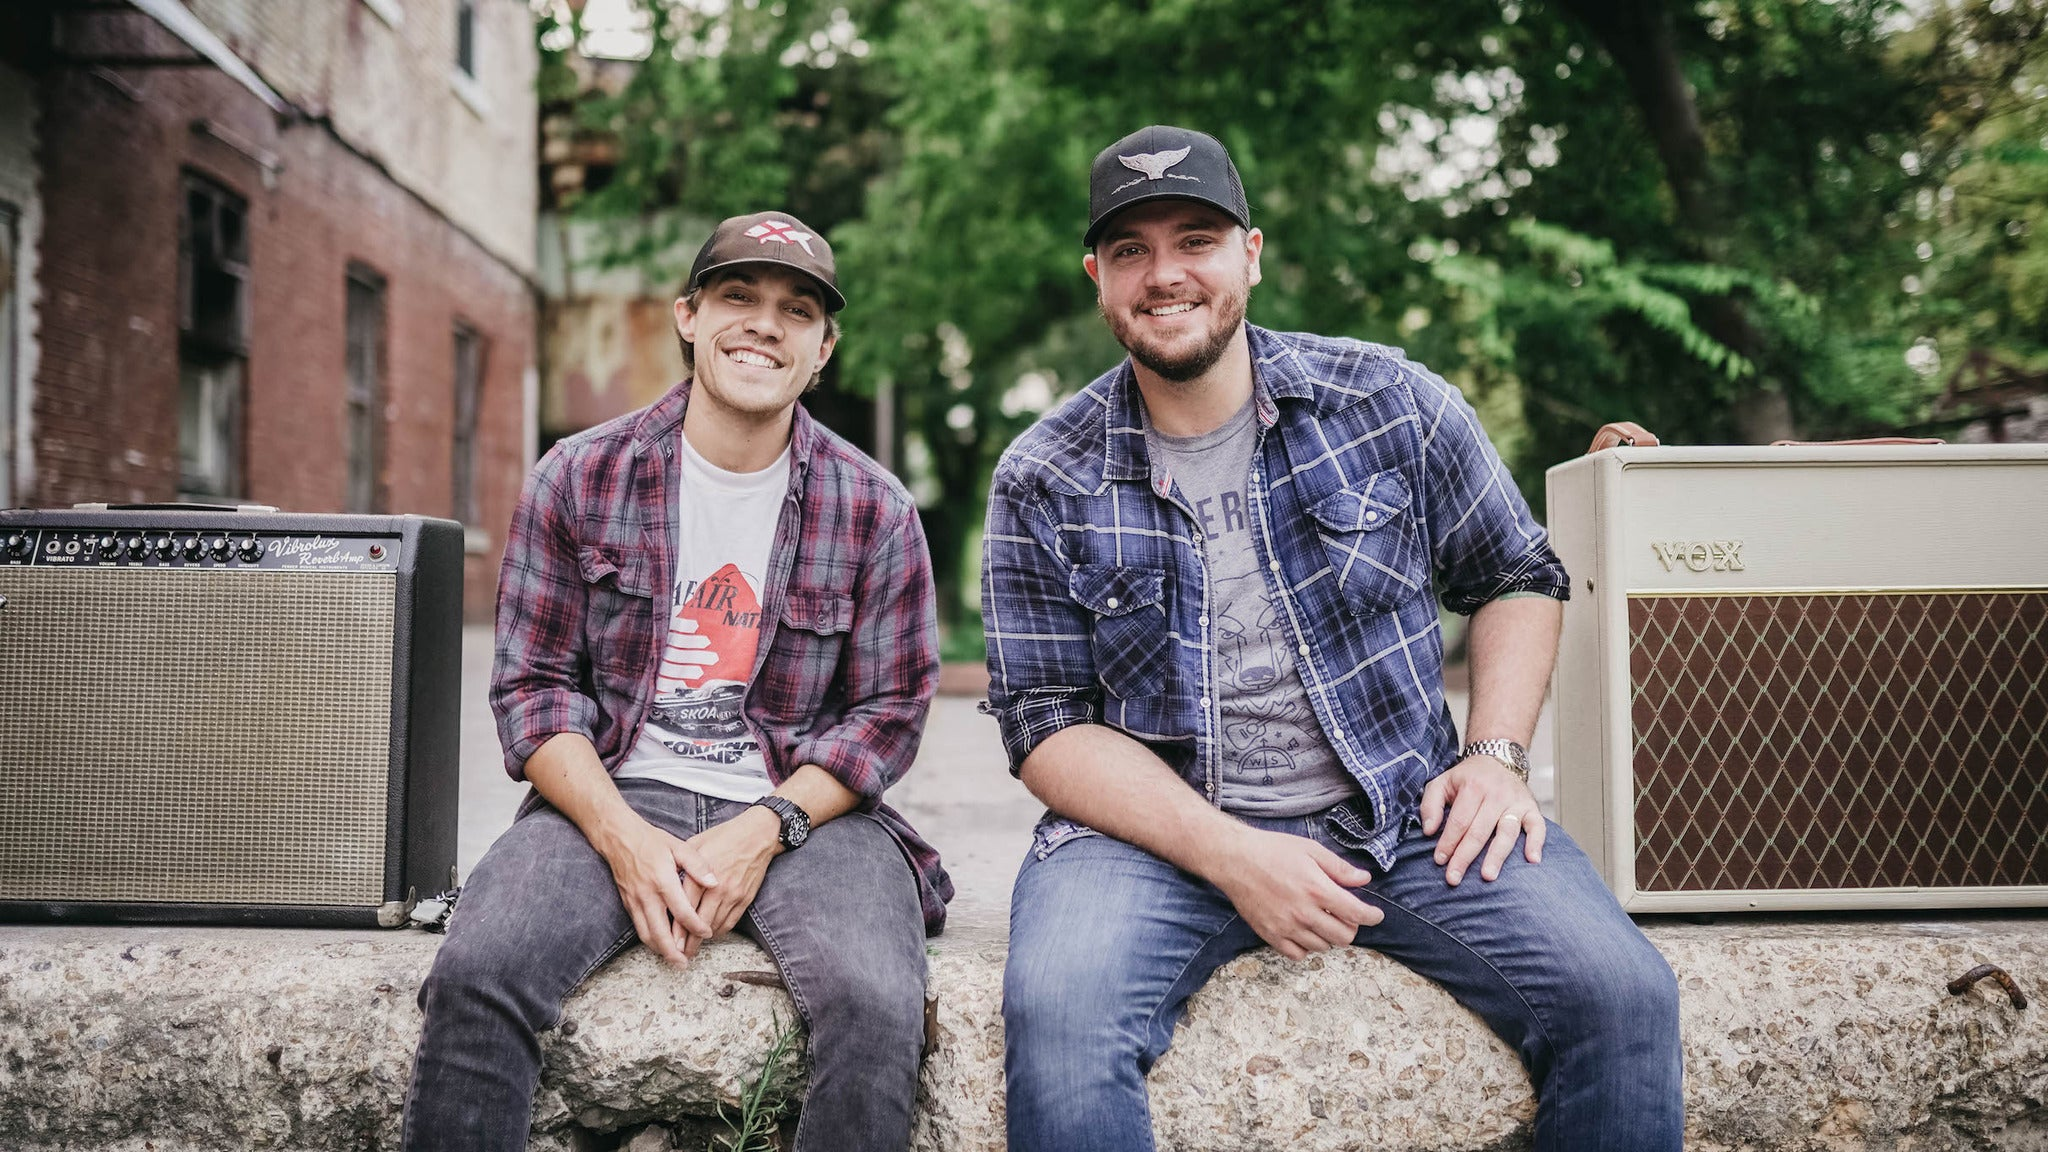 Muscadine Bloodline pre-sale password for early tickets in Huntsville